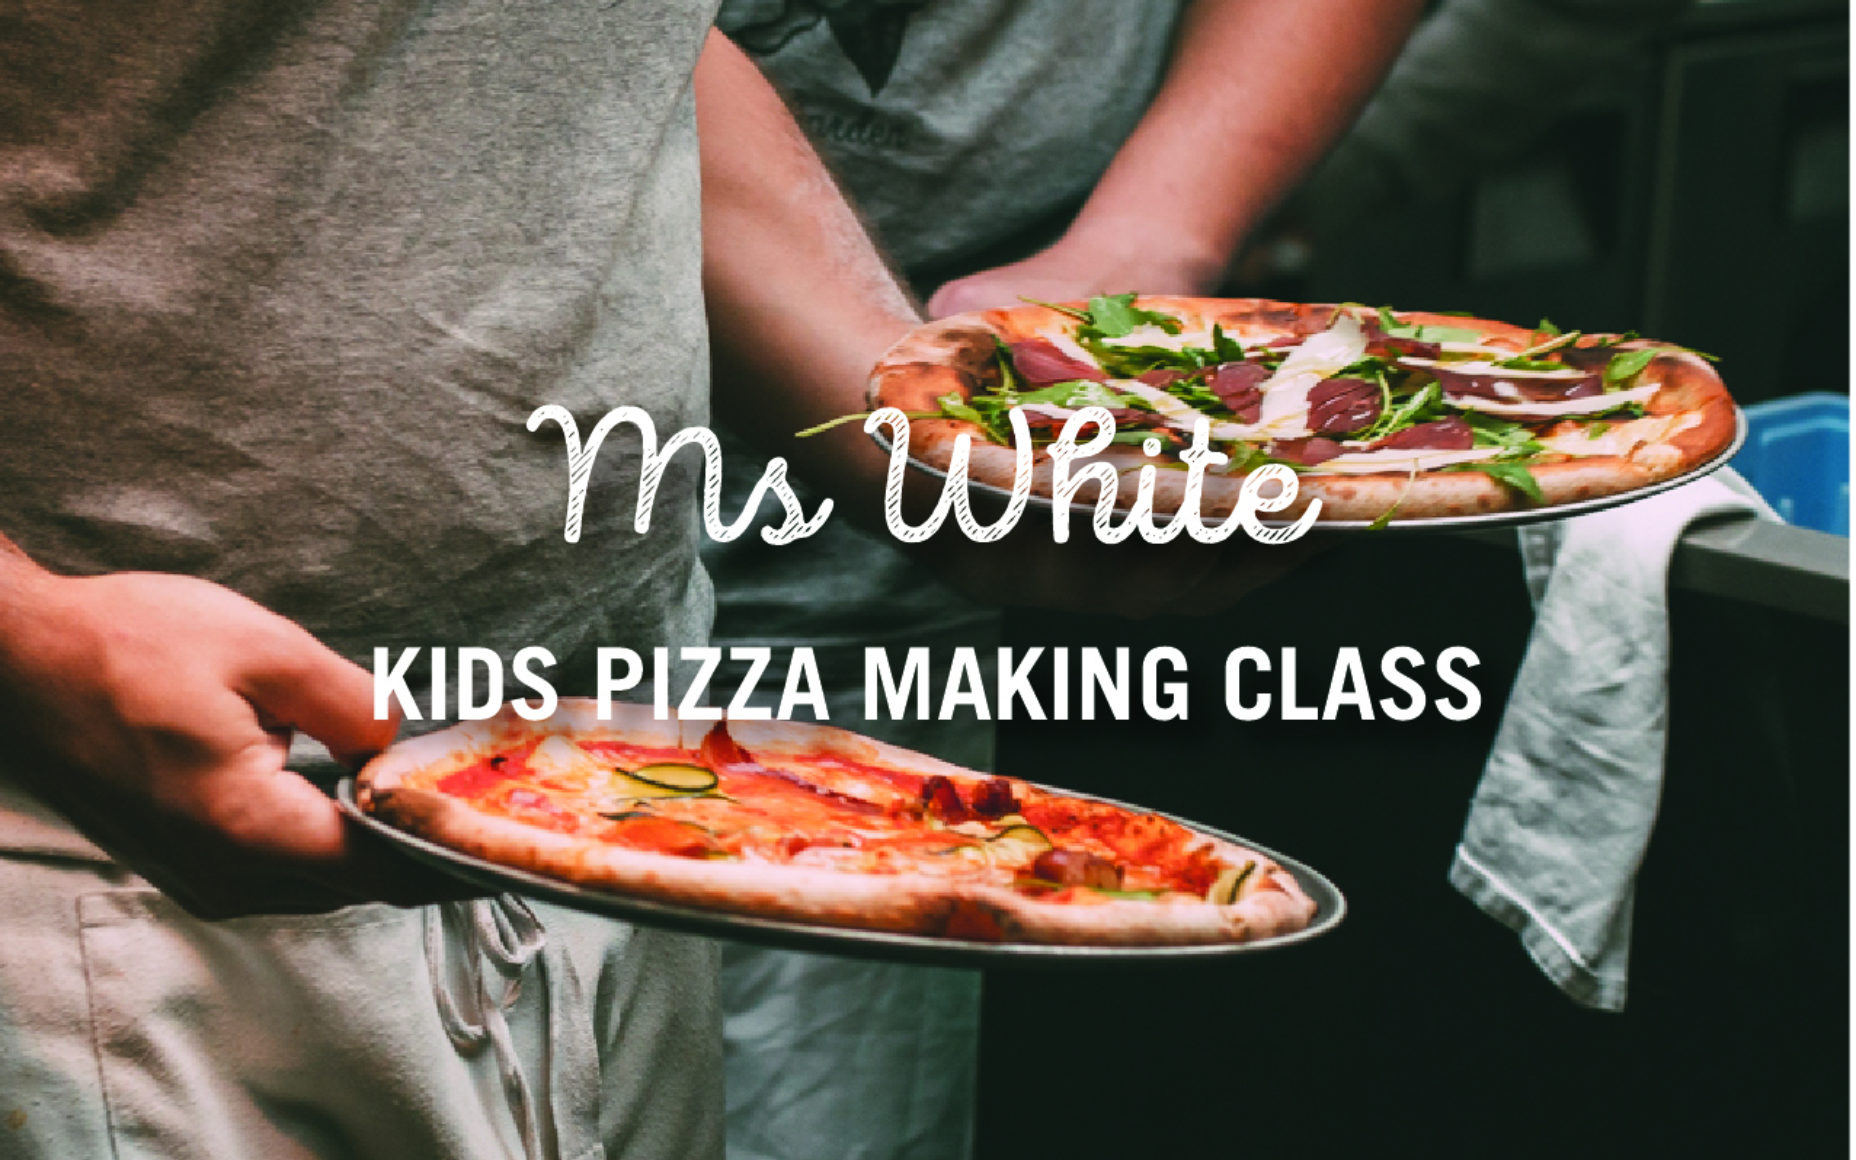 Ms Whites Kids Pizza Making Class Social Post